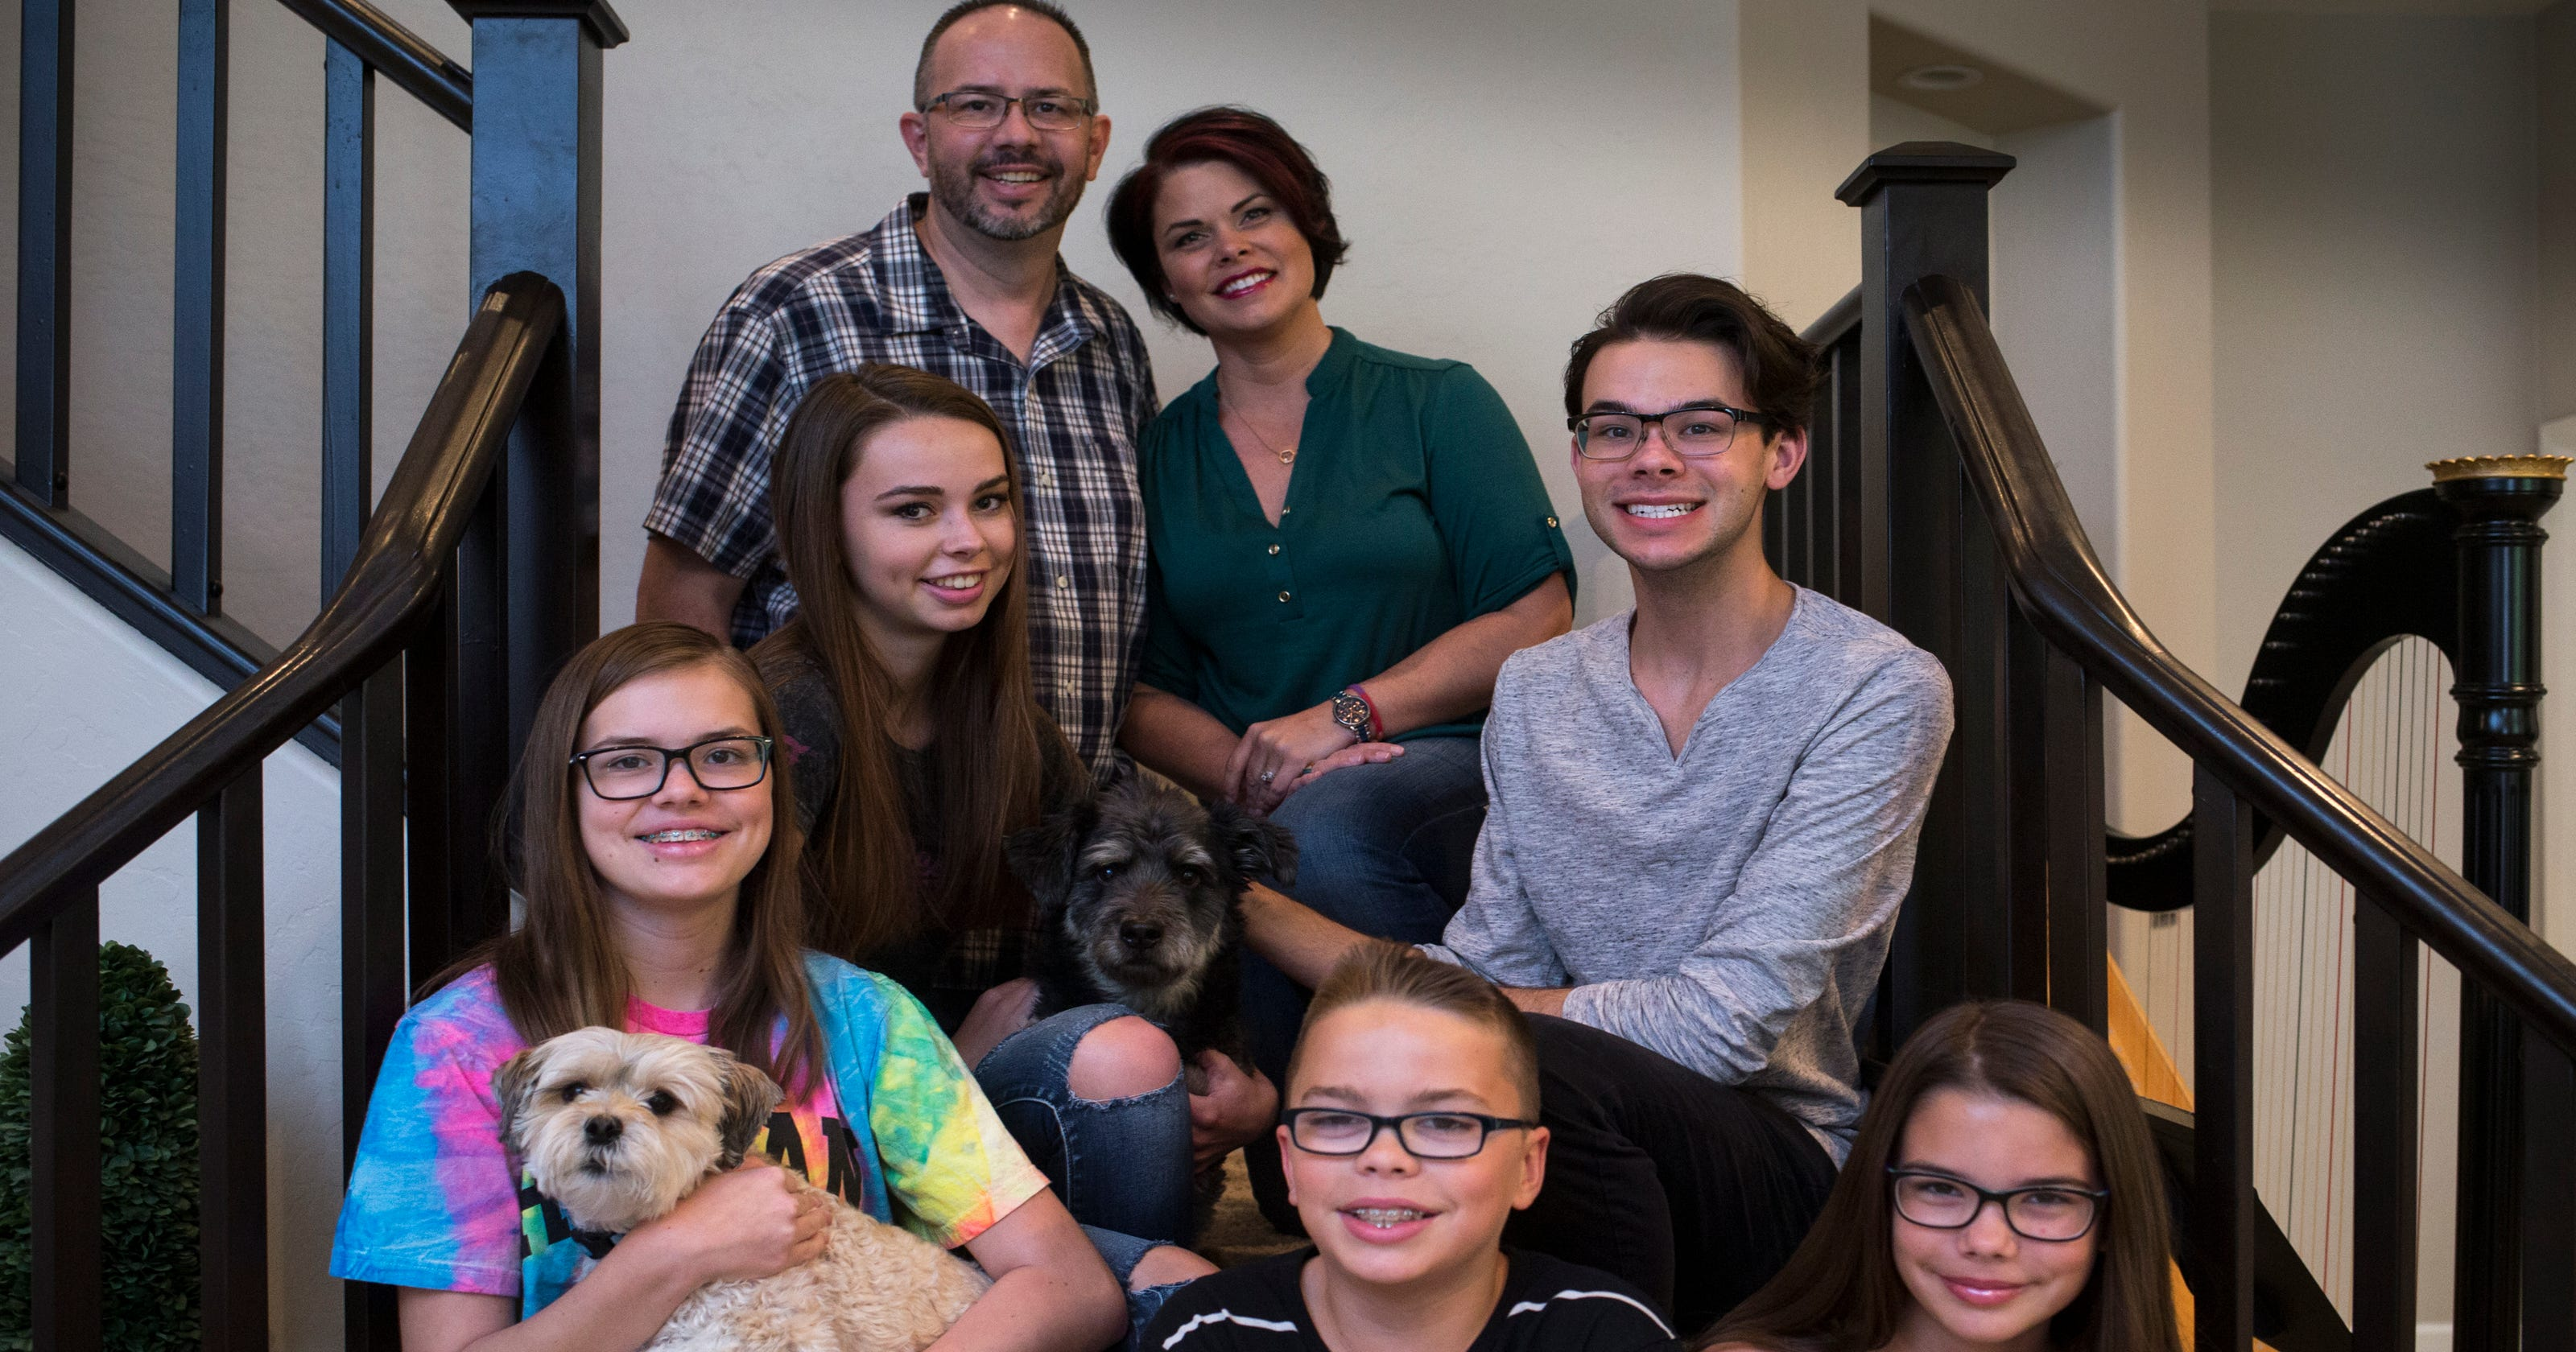 Coming out: What parents of LGBTQ kids can do